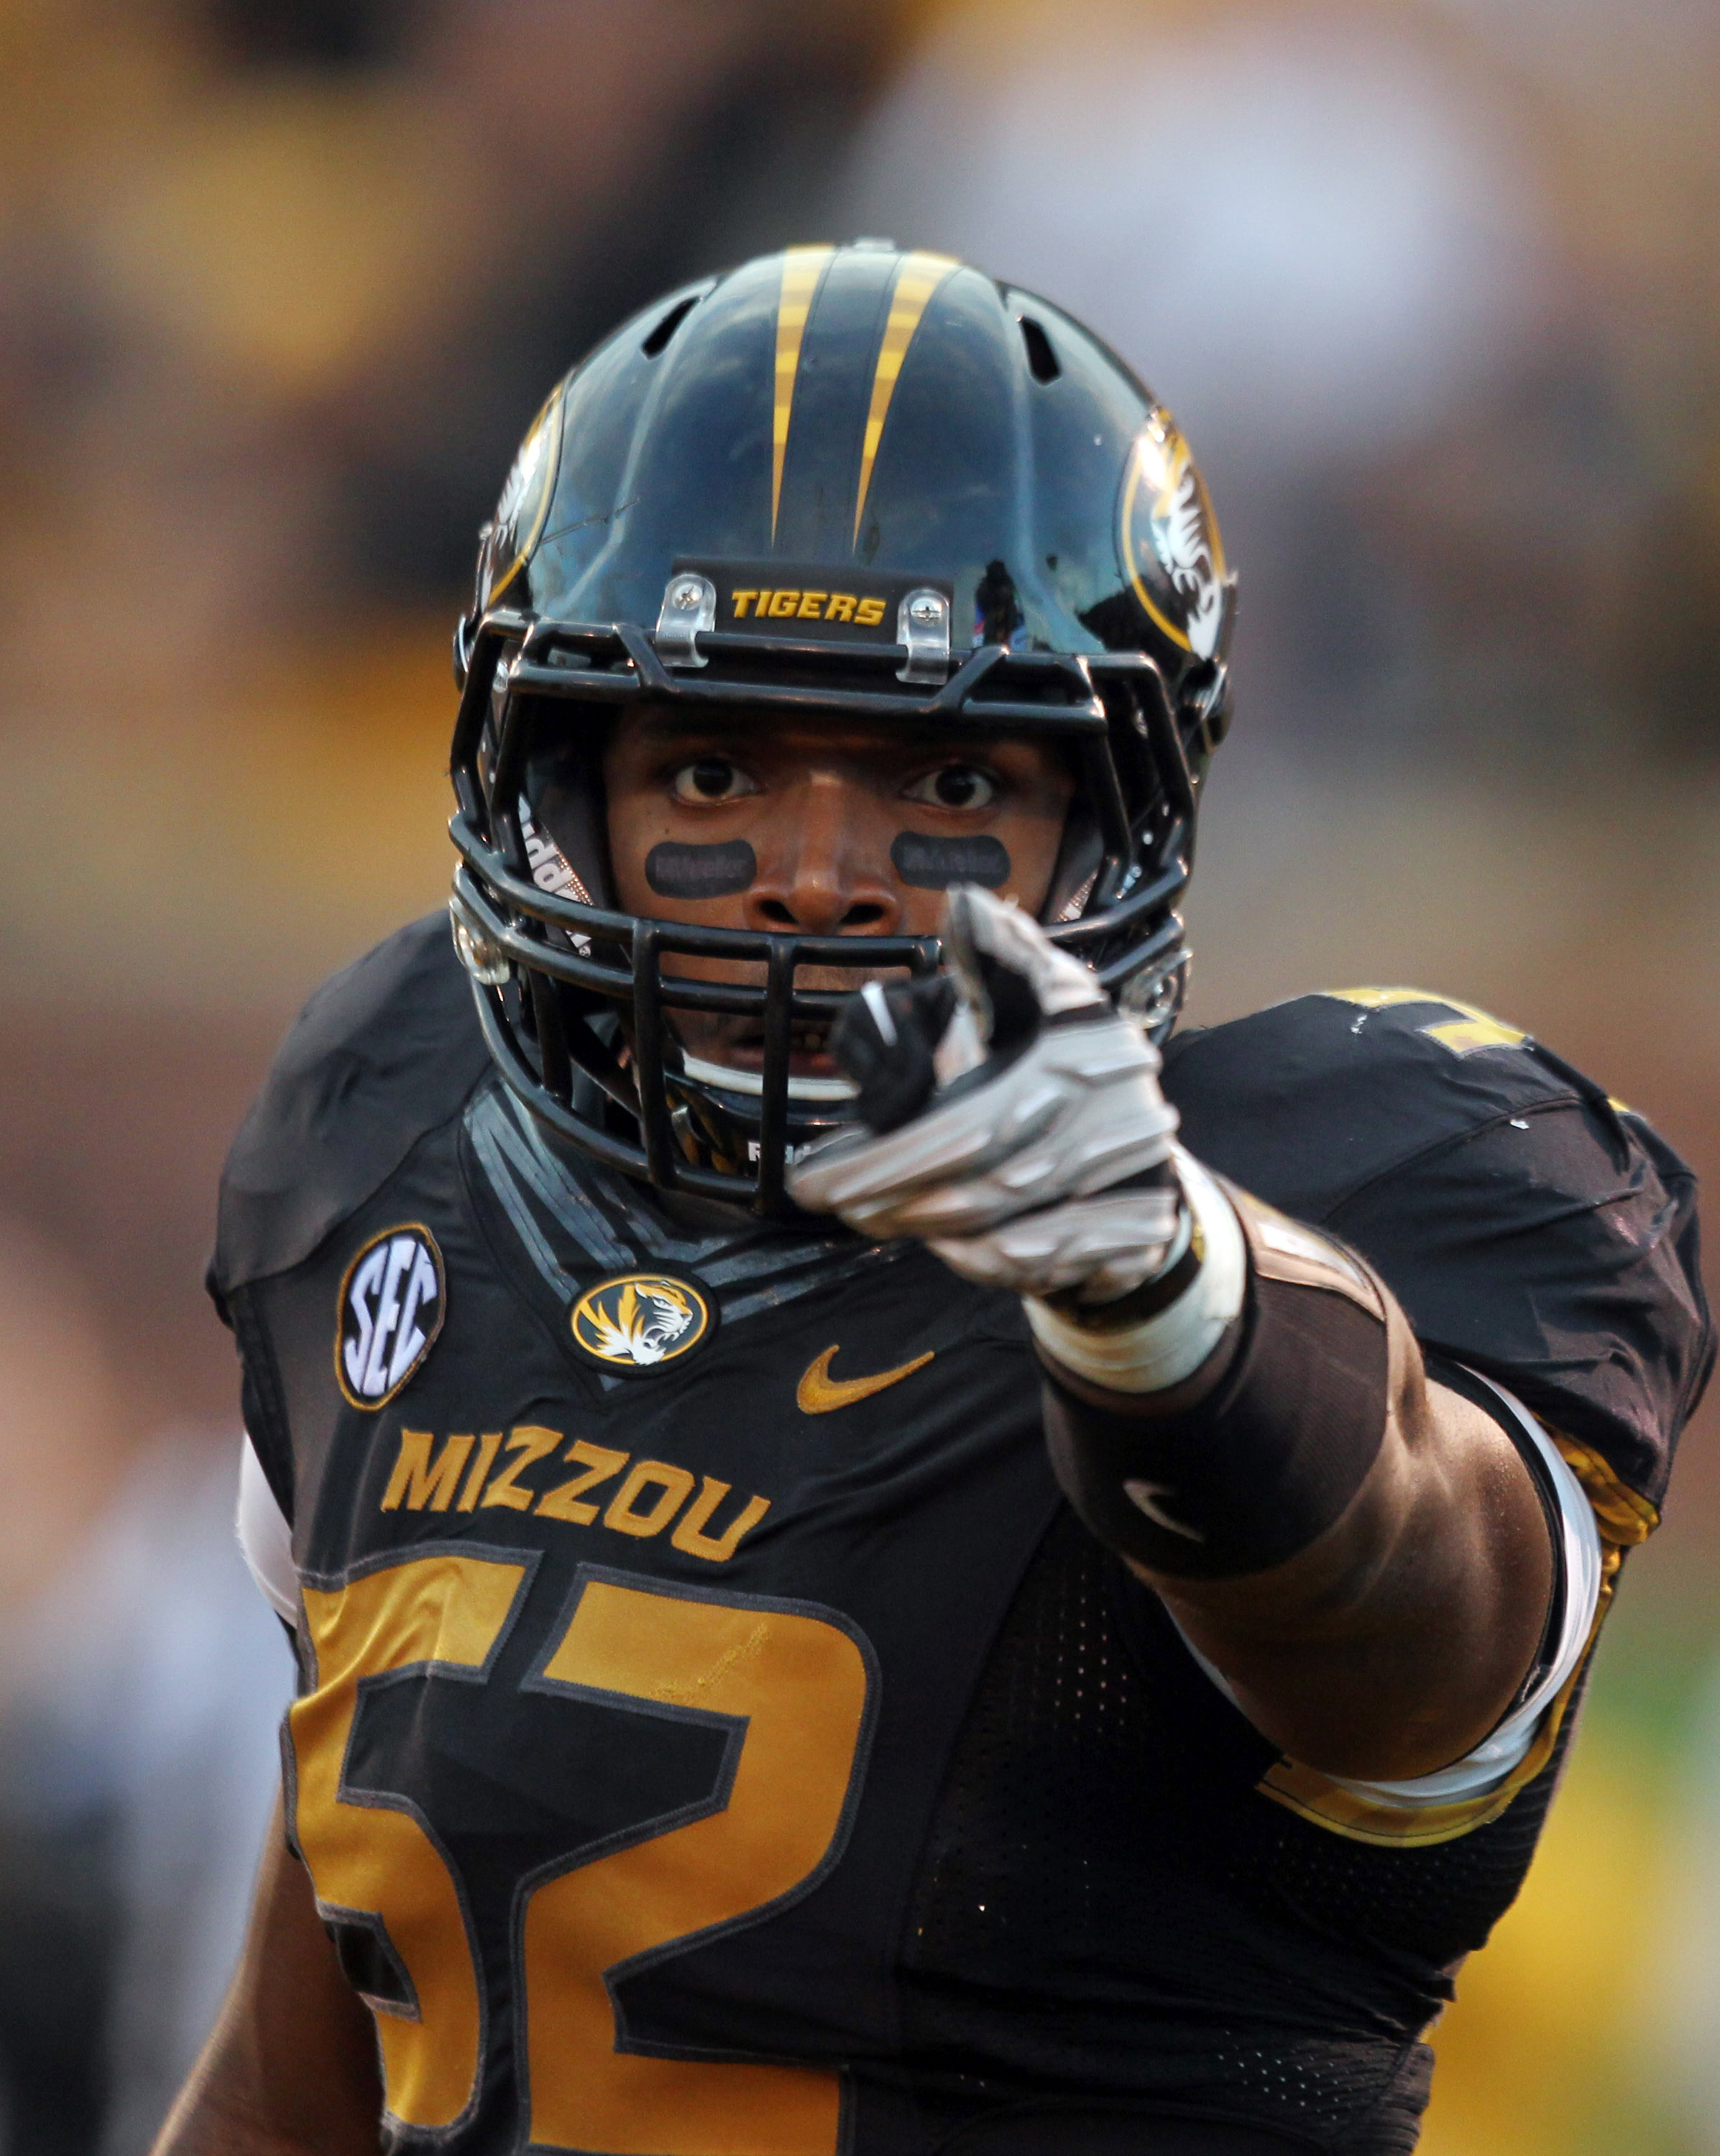 Former University of Missouri football player Michael Sam